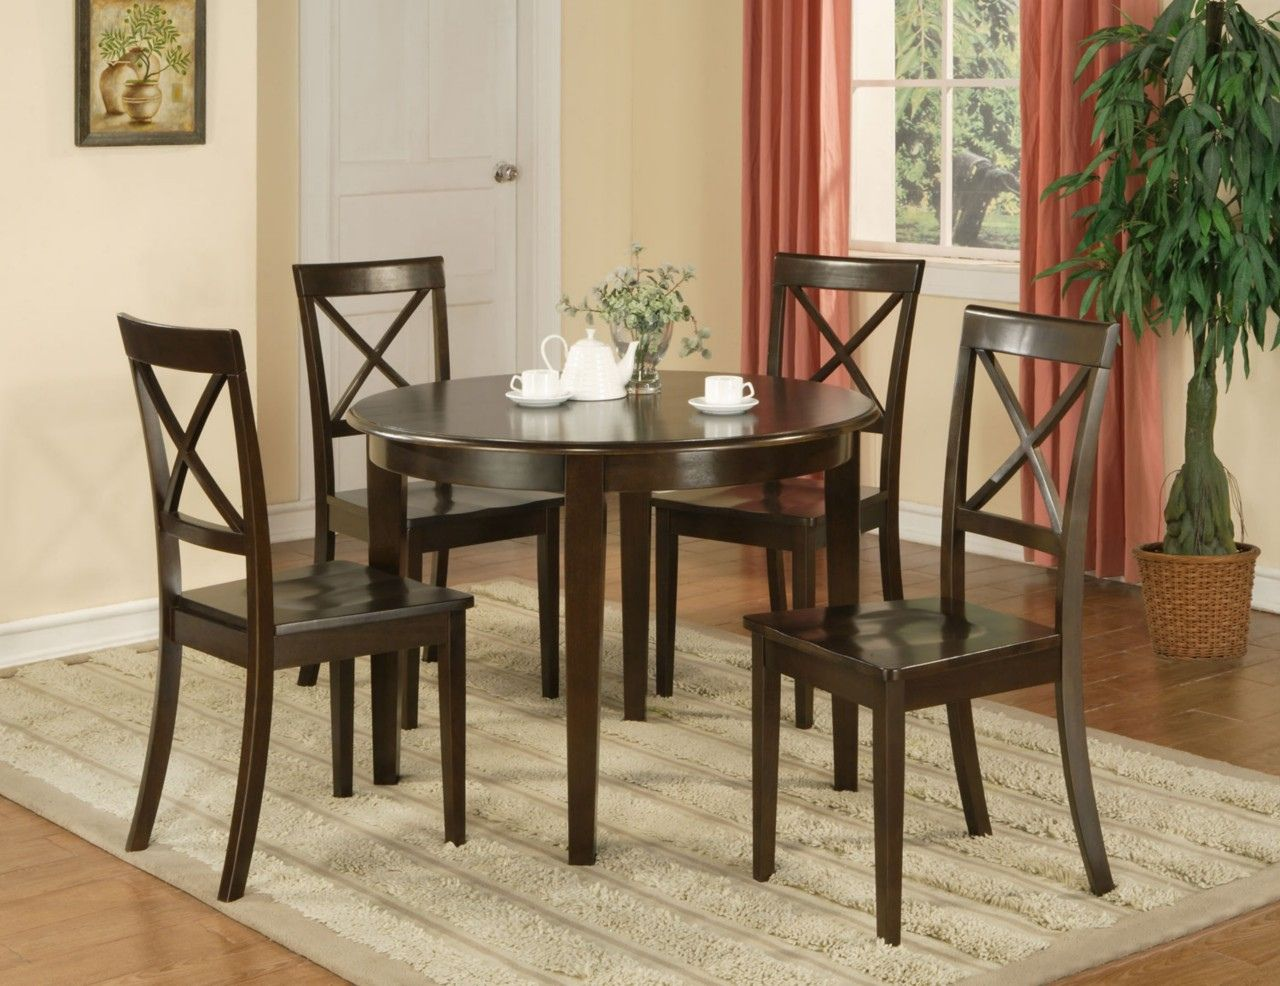 100 Round Kitchen Tables For 4 Small Kitchen Remodel Ideas On A Budget Check More At Round Dining Table Sets Round Kitchen Table Set Kitchen Table Settings